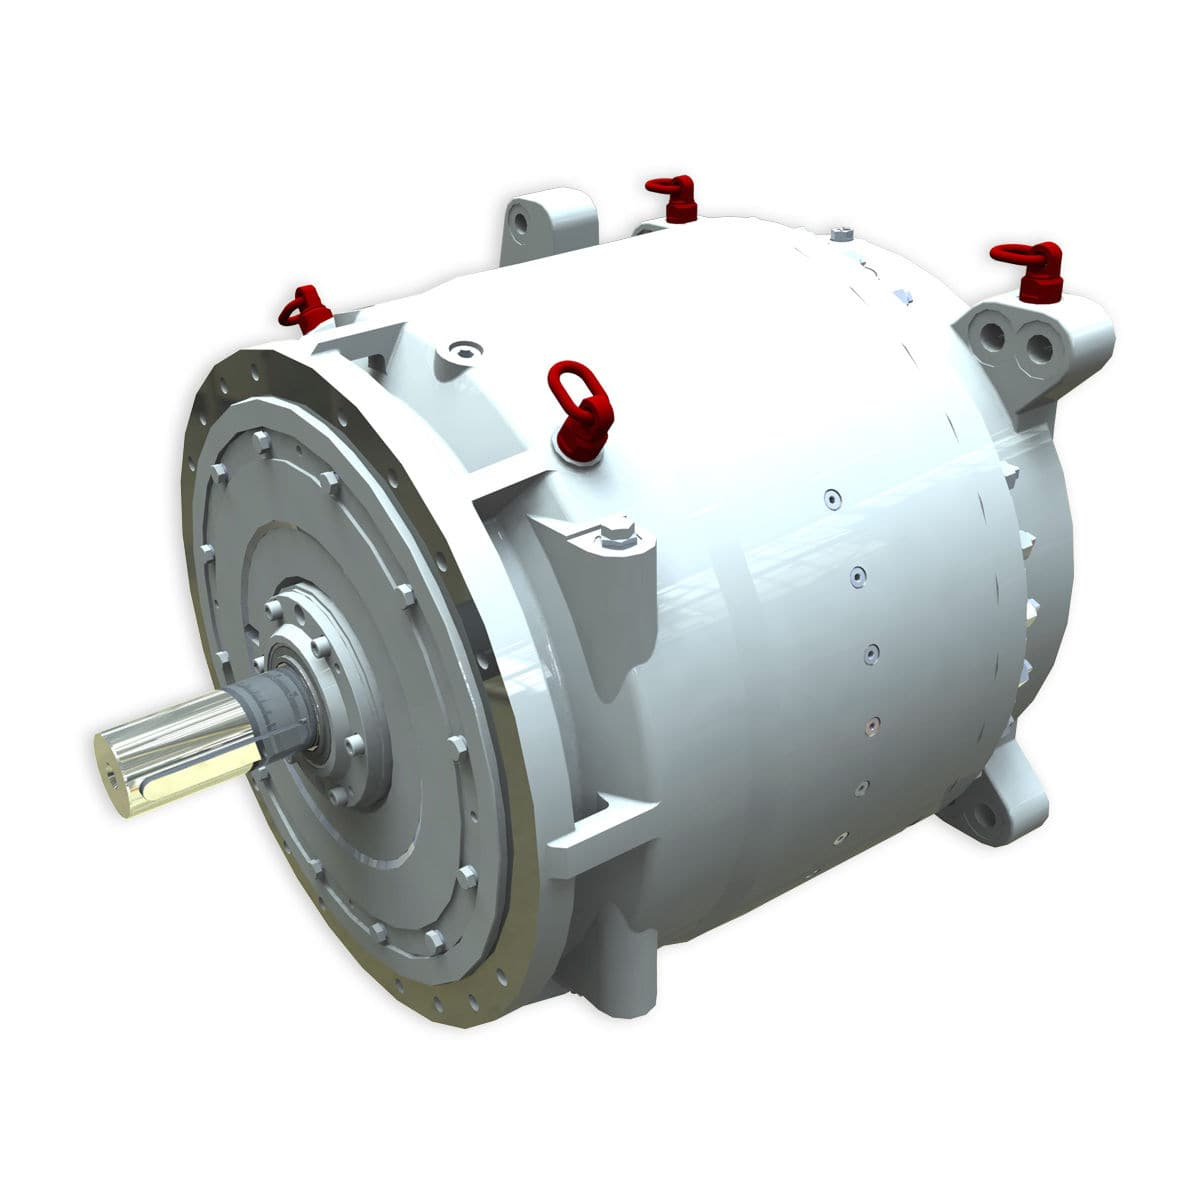 Planetary gear reducer / coaxial / for conveyors - FPL 35